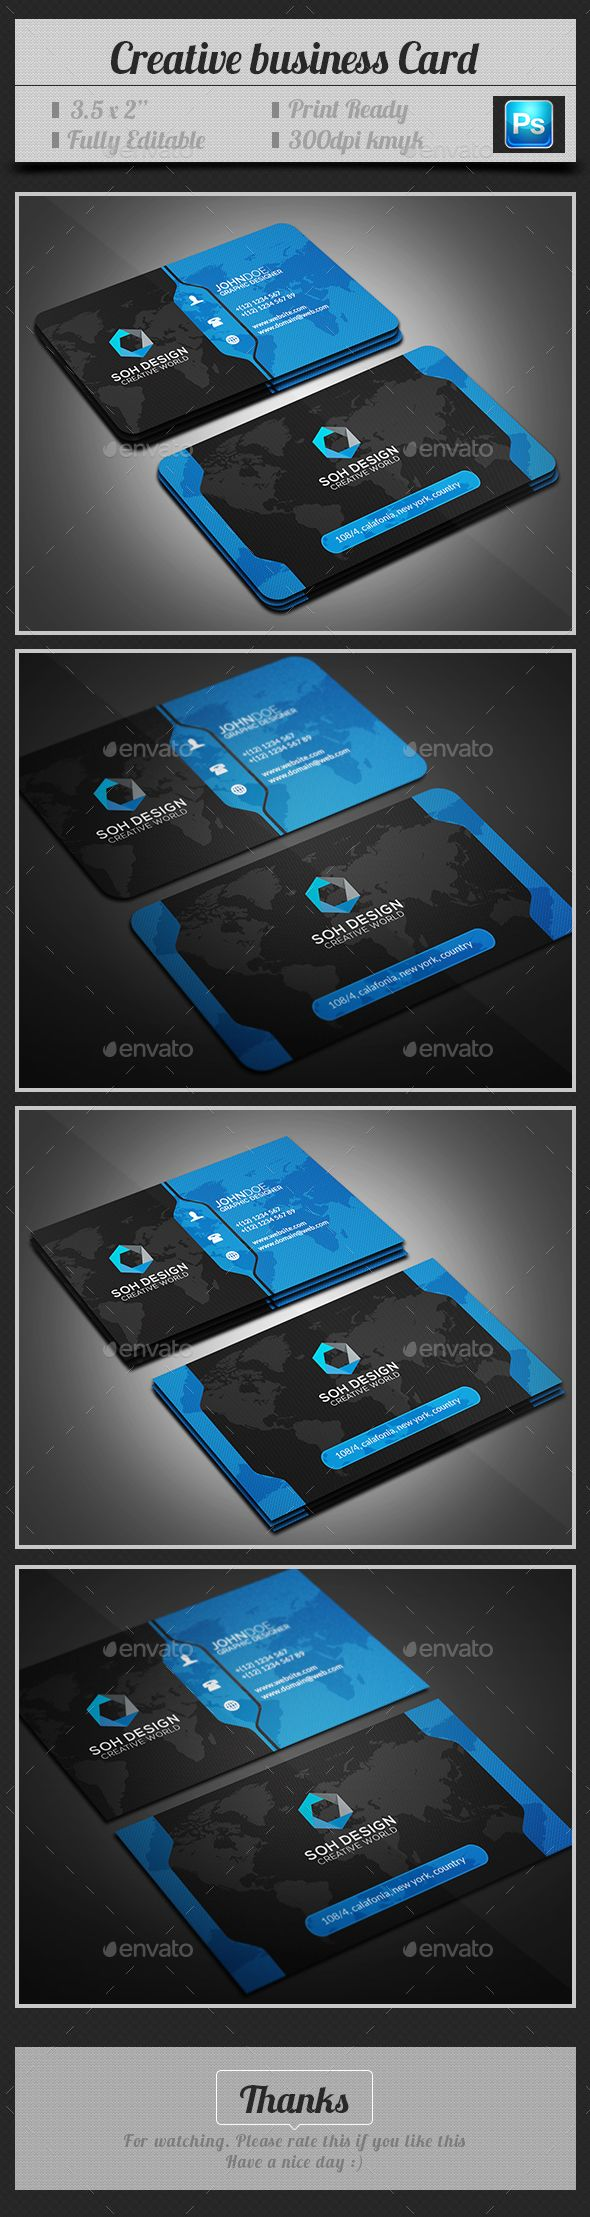 366 best business card design images on pinterest business card creative business card reheart Choice Image